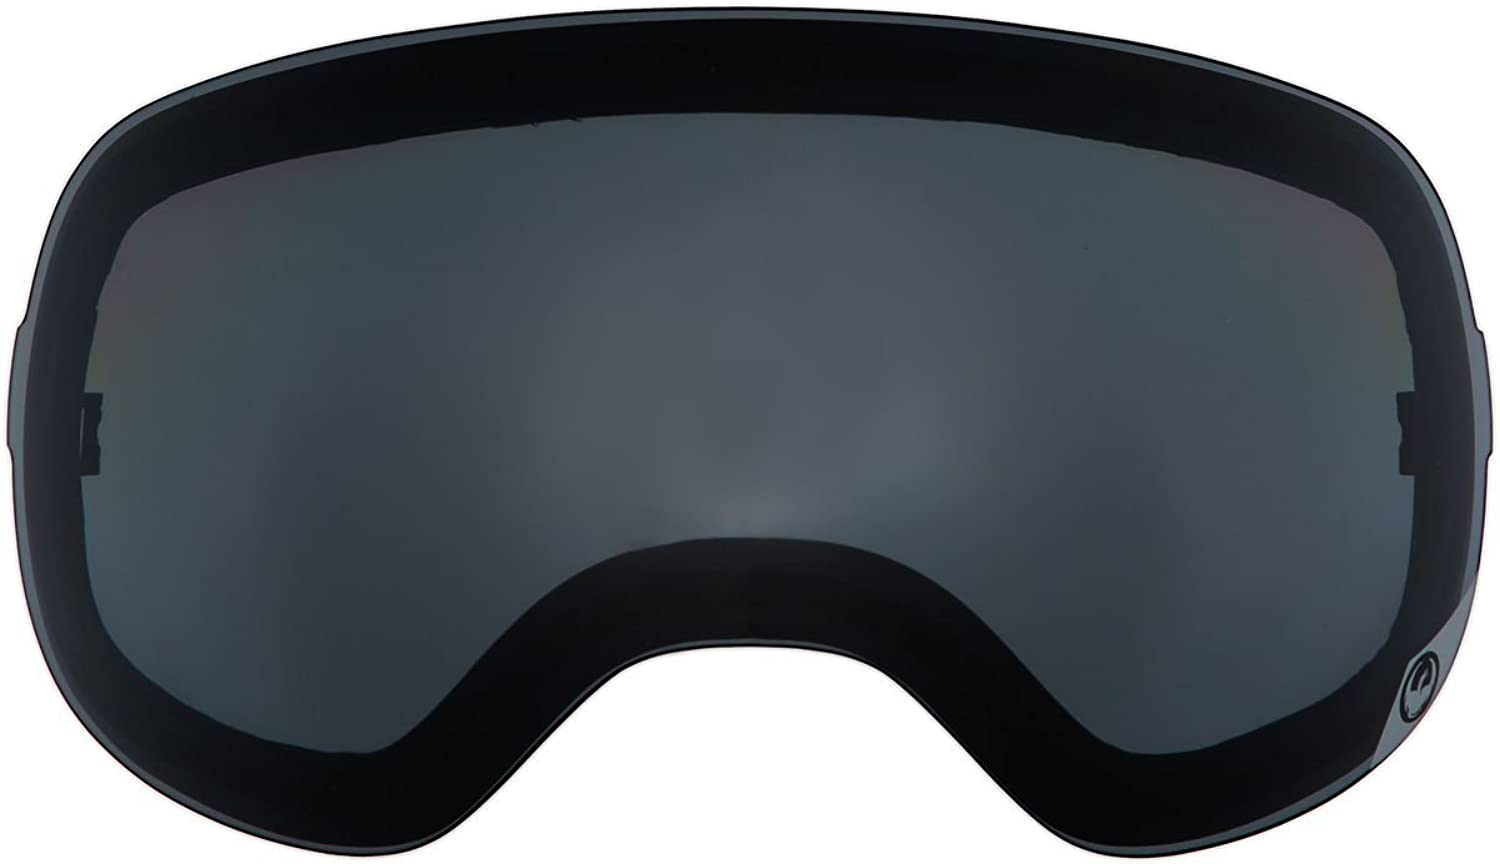 Dragon X2 Snow Goggle Replacement Lens - Dark Smoke (722-5280) B015H8YKOG  Qualität